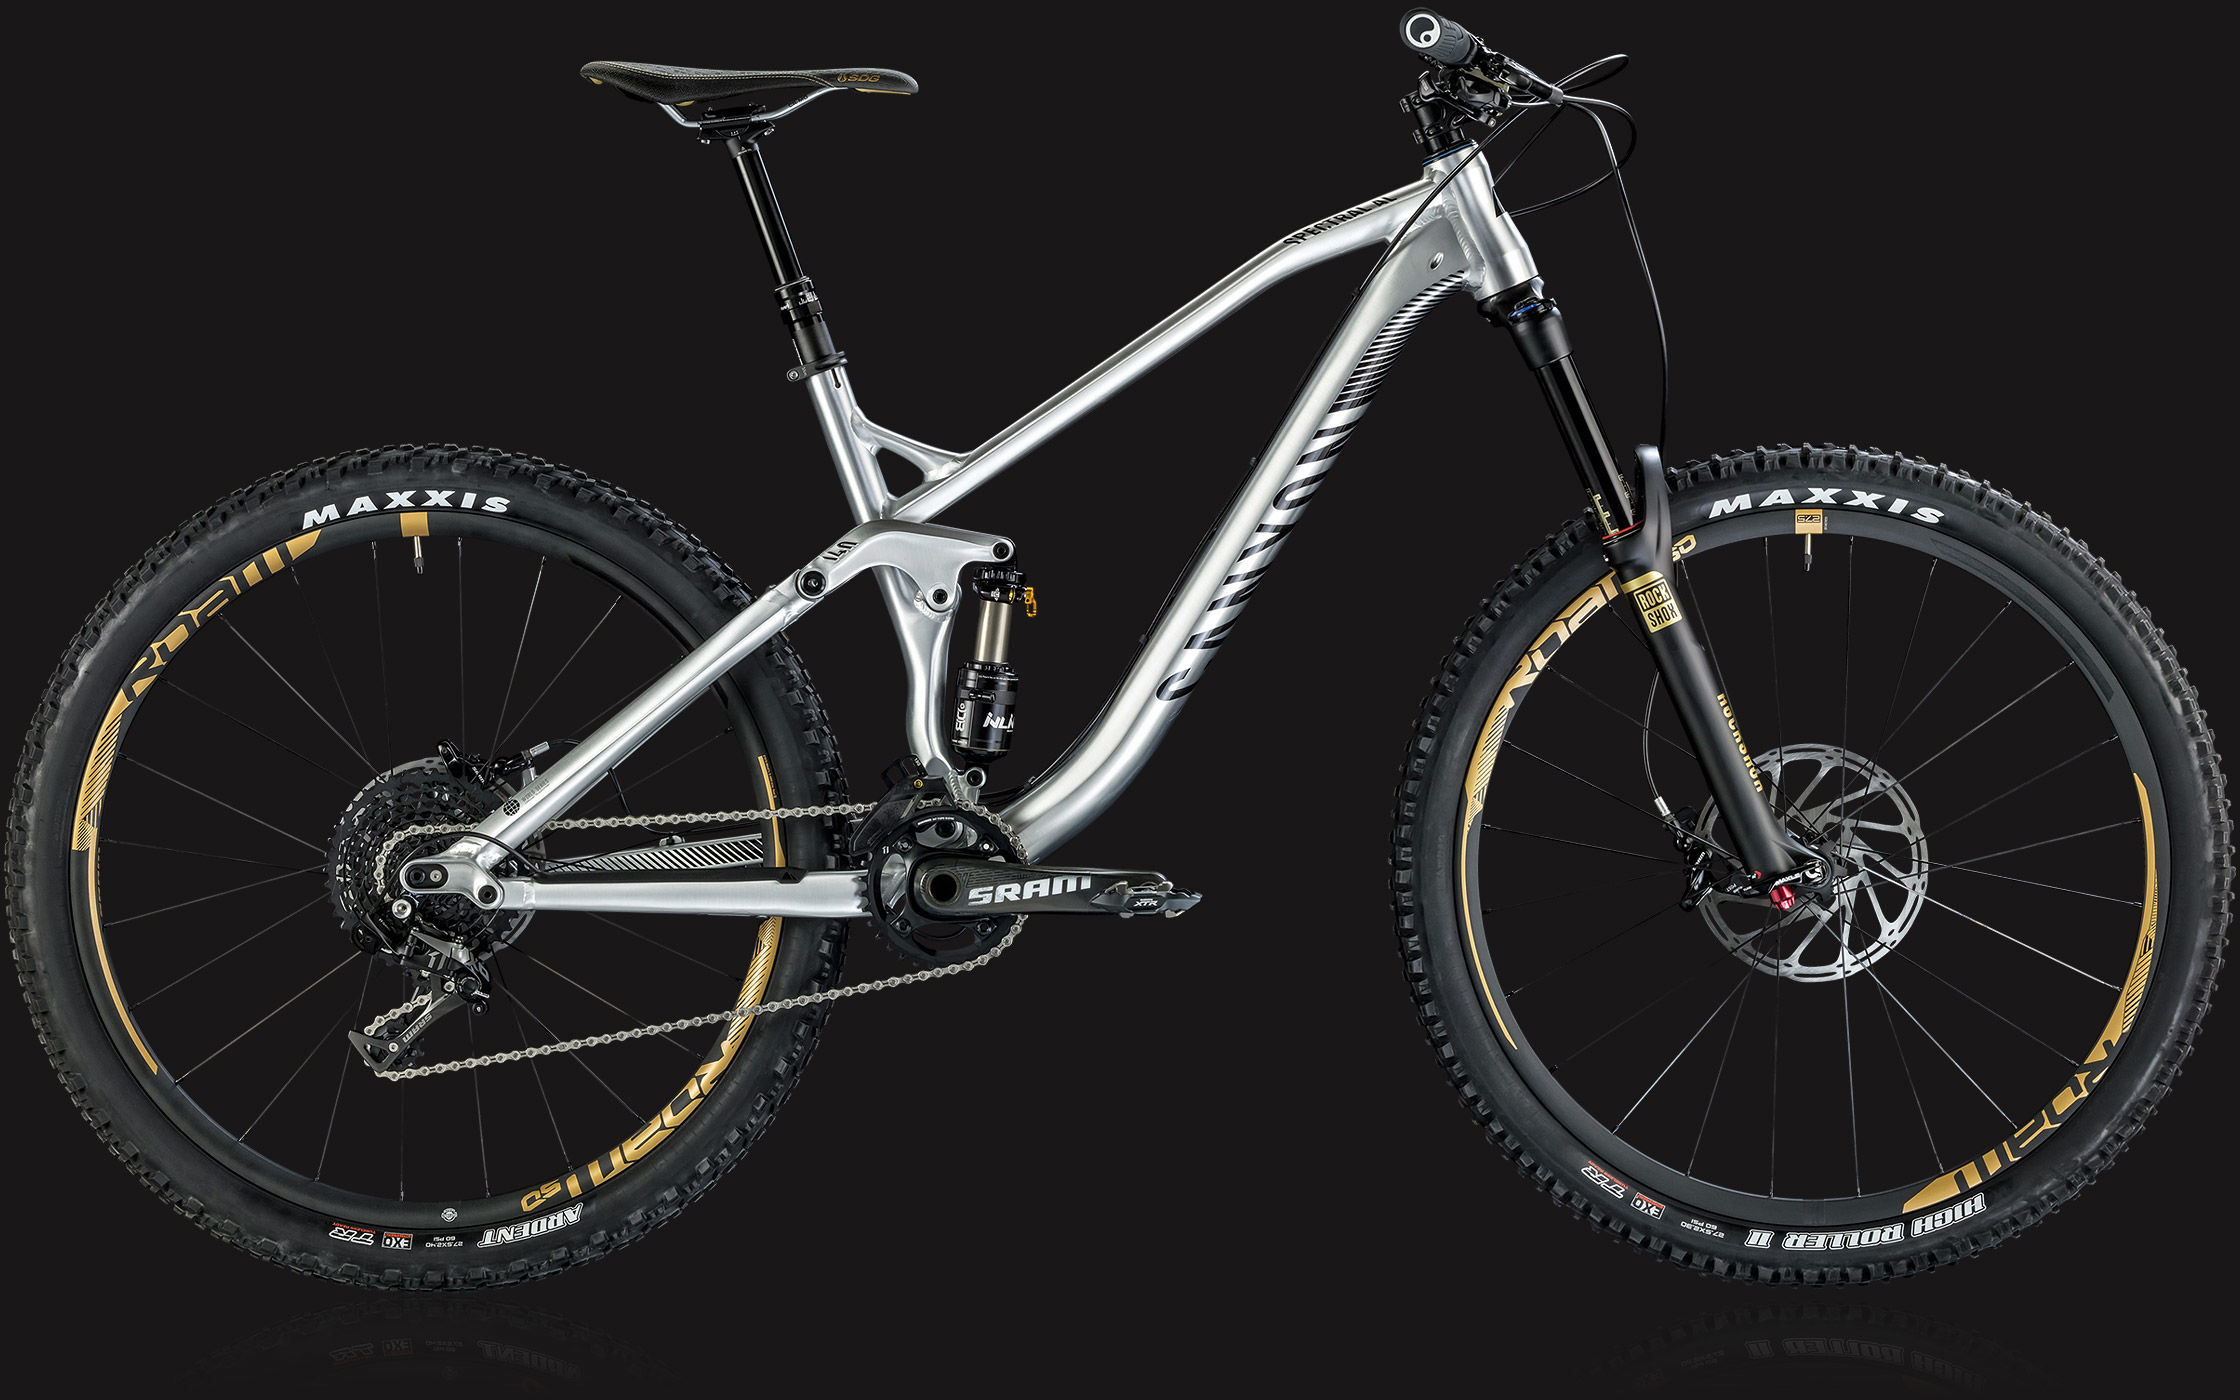 Canyon Spectral AL 8.0 EX 2015 Review